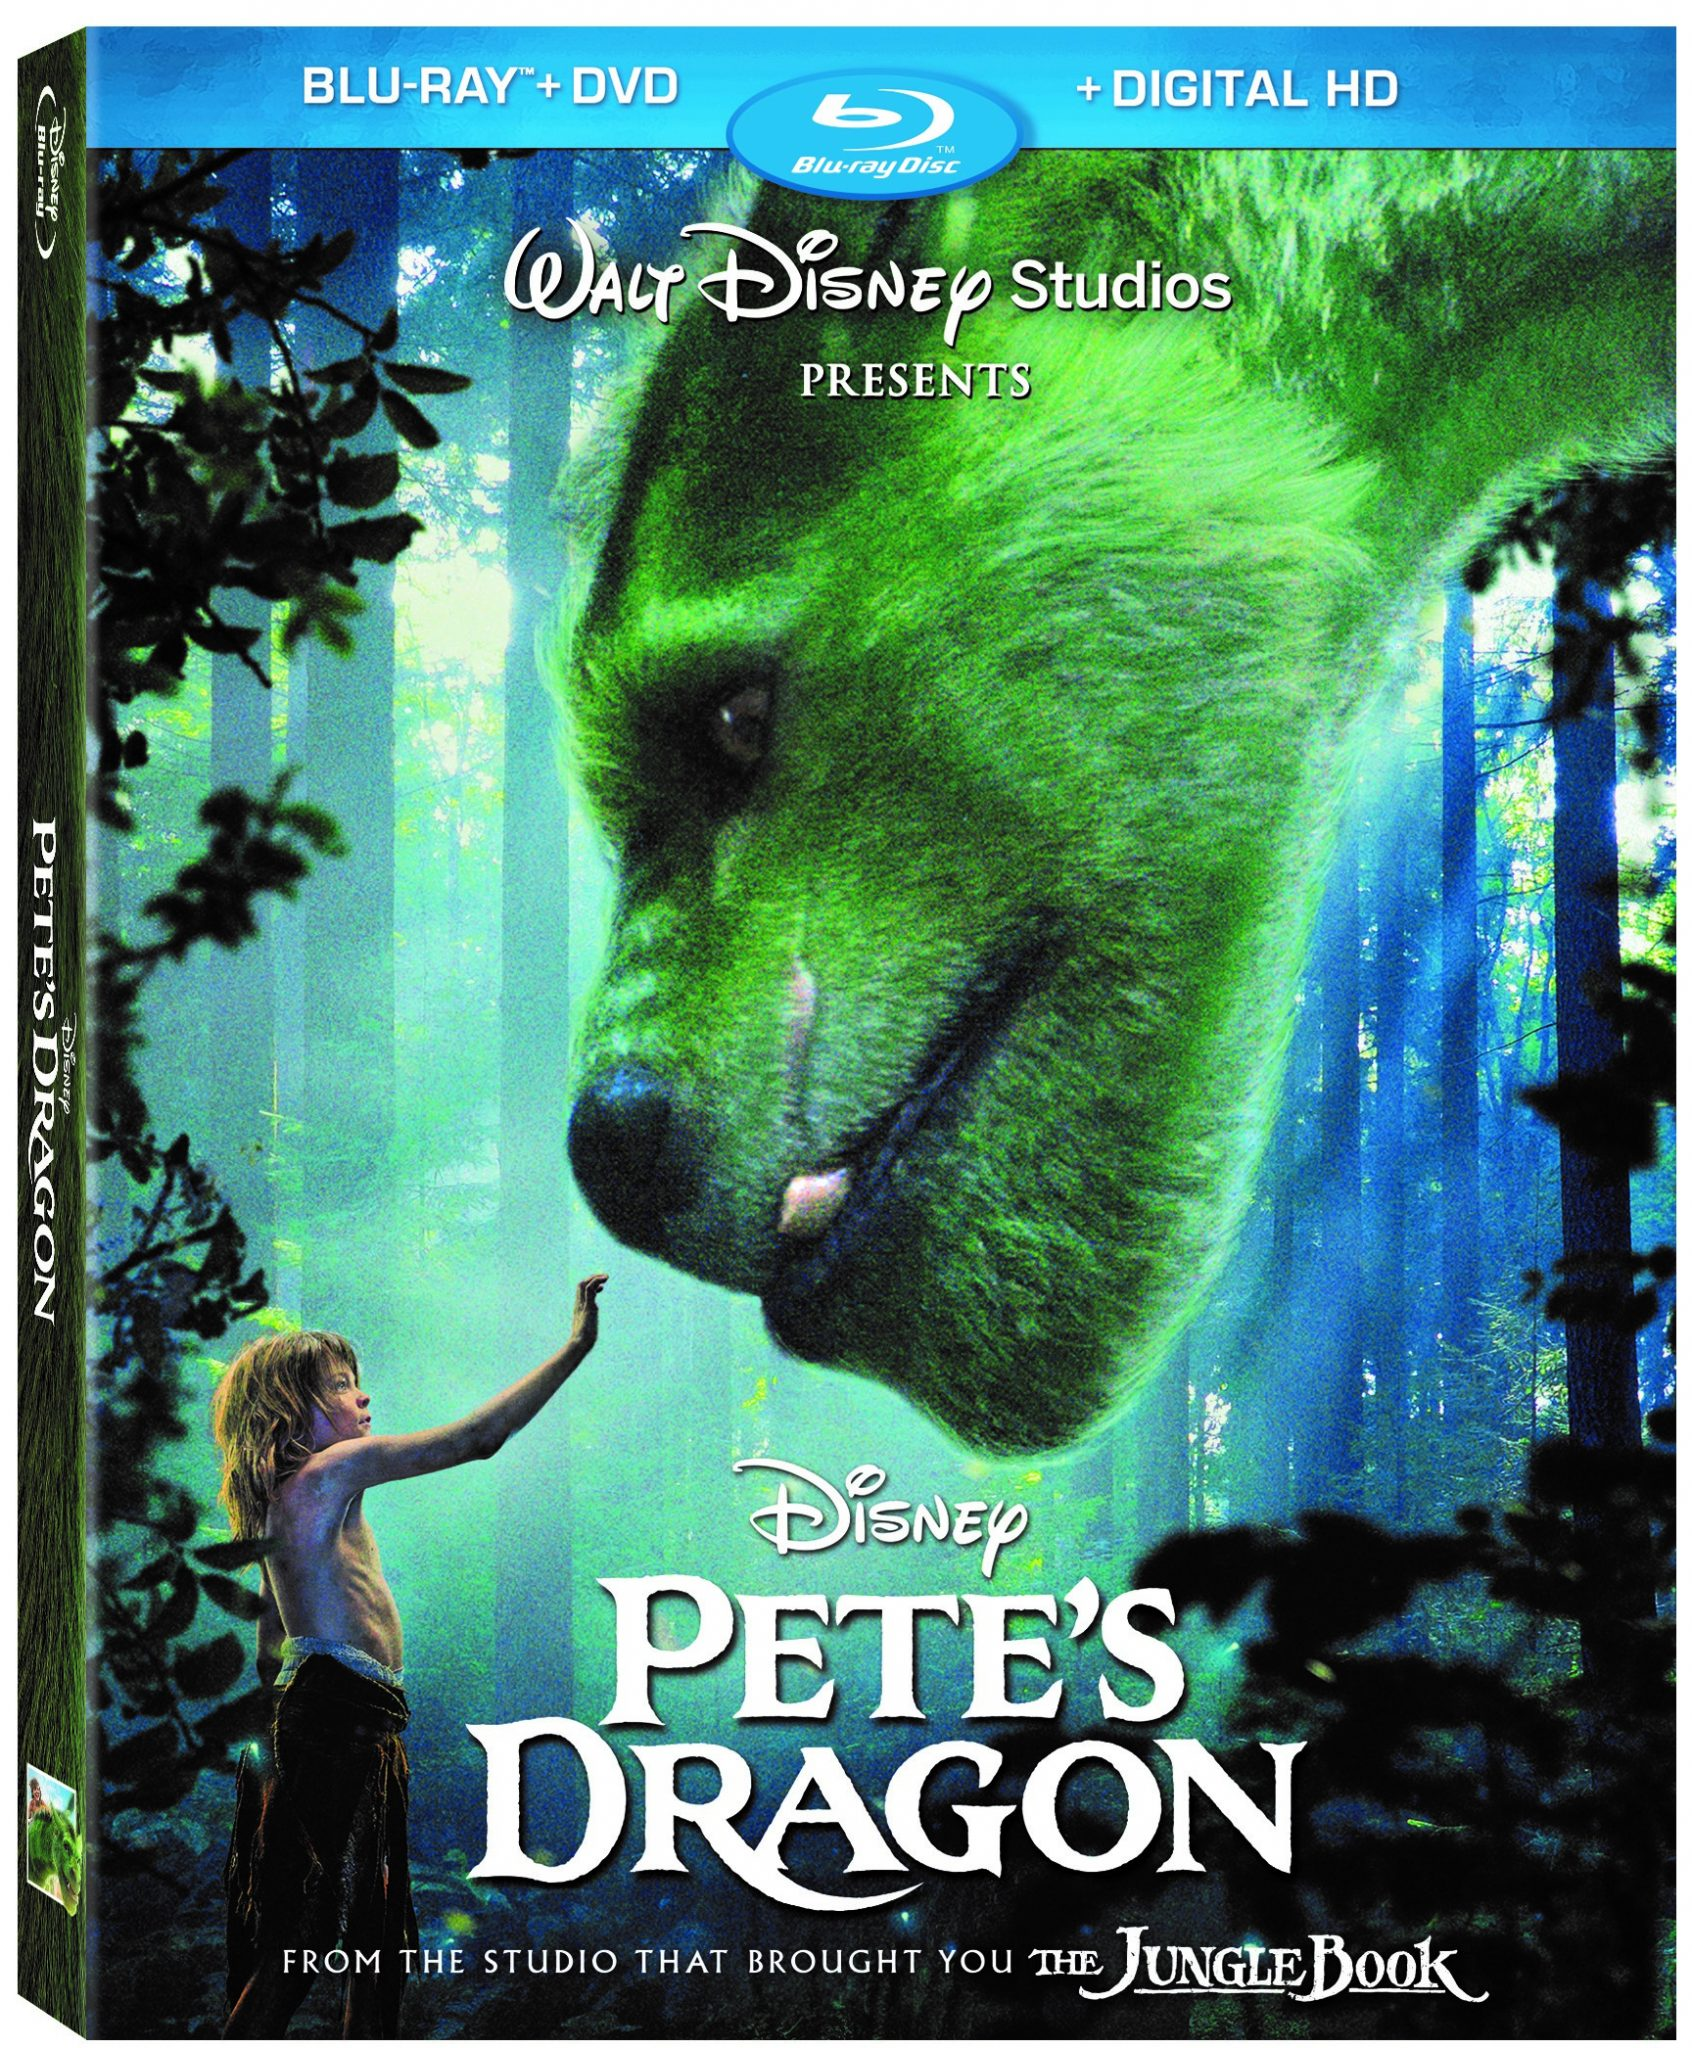 Pete's Dragon Blu-Ray Box